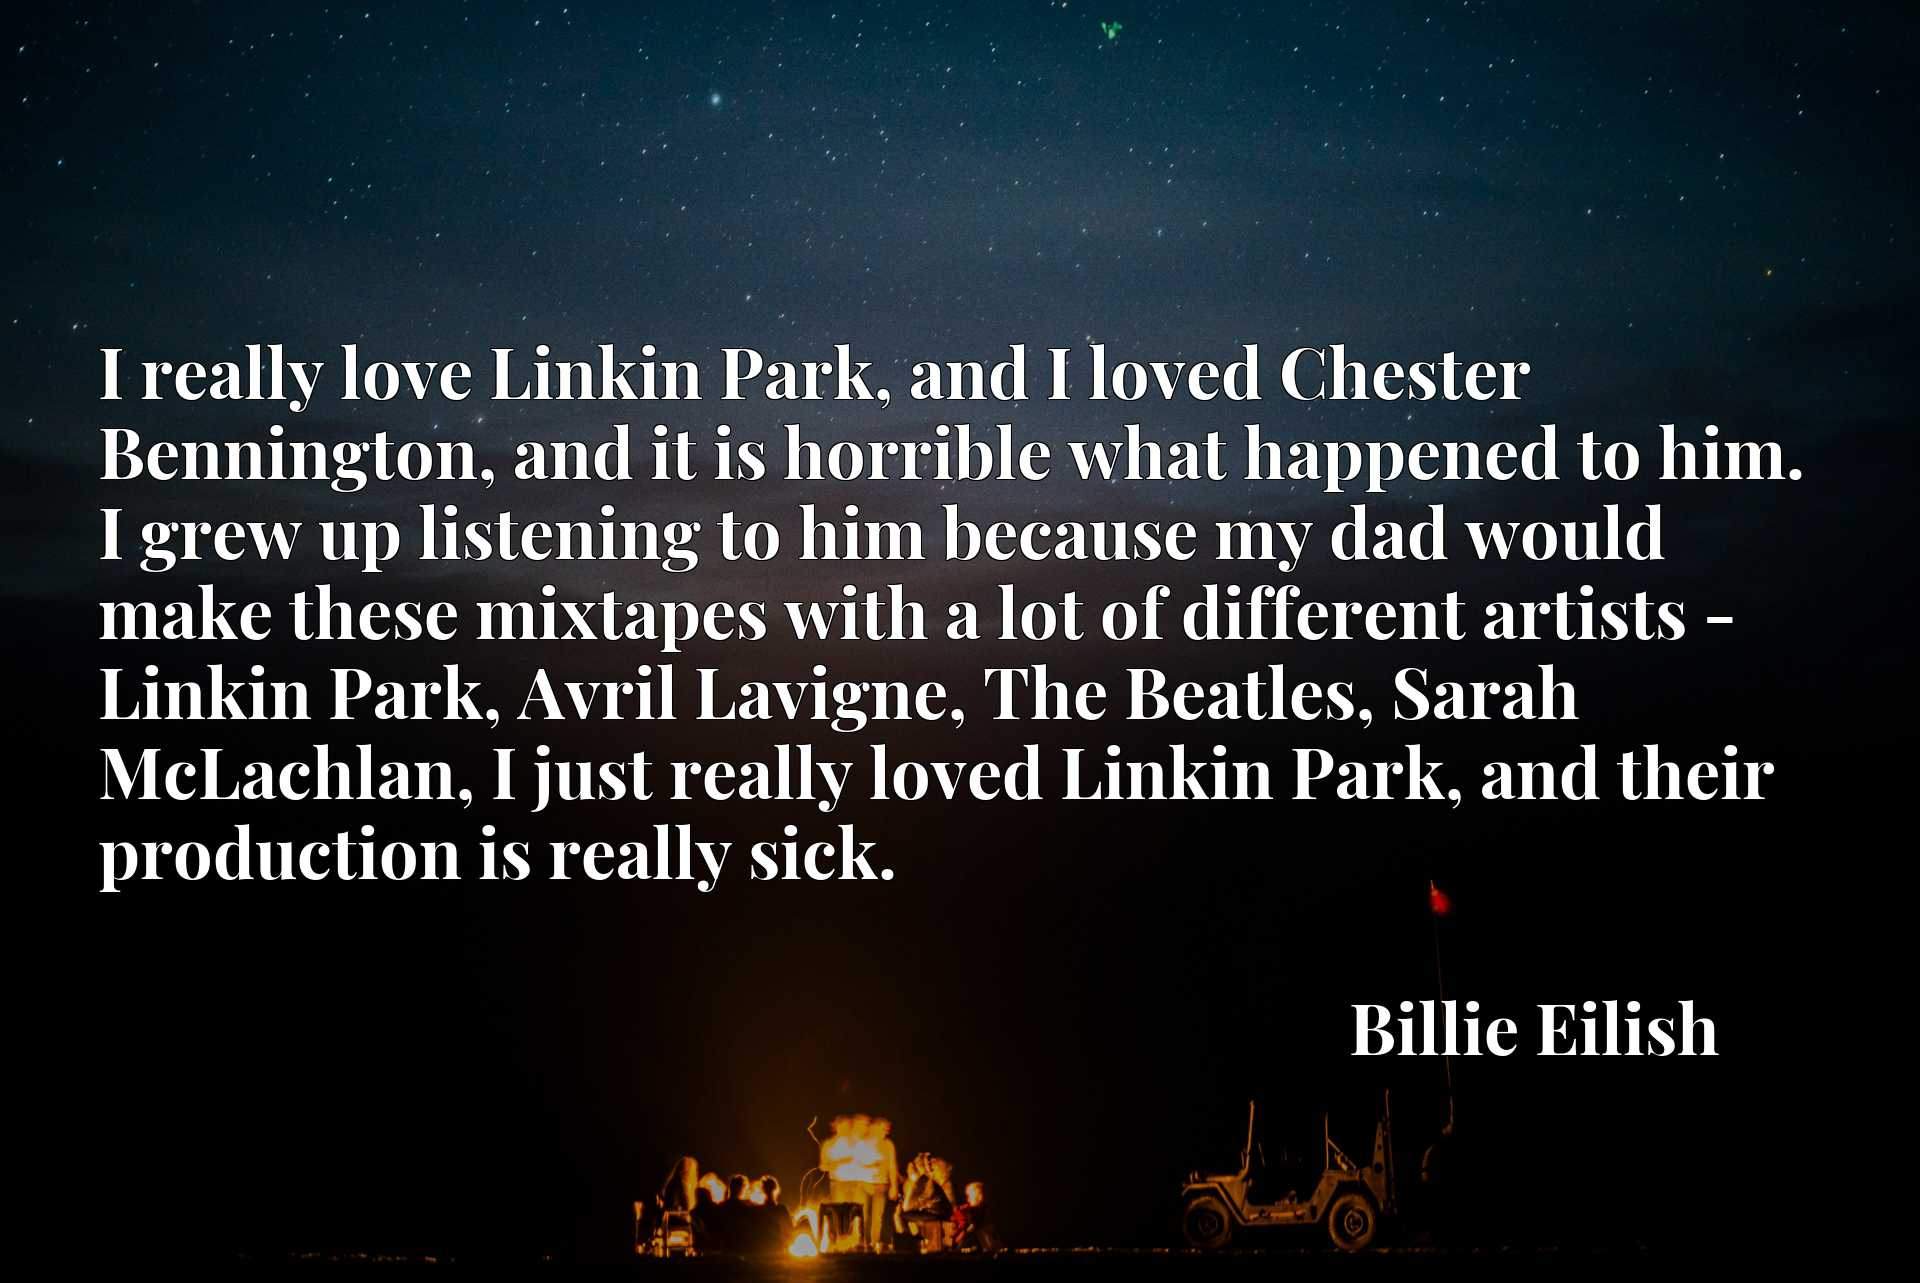 Quote Picture :I really love Linkin Park, and I loved Chester Bennington, and it is horrible what happened to him. I grew up listening to him because my dad would make these mixtapes with a lot of different artists - Linkin Park, Avril Lavigne, The Beatles, Sarah McLachlan, I just really loved Linkin Park, and their production is really sick.